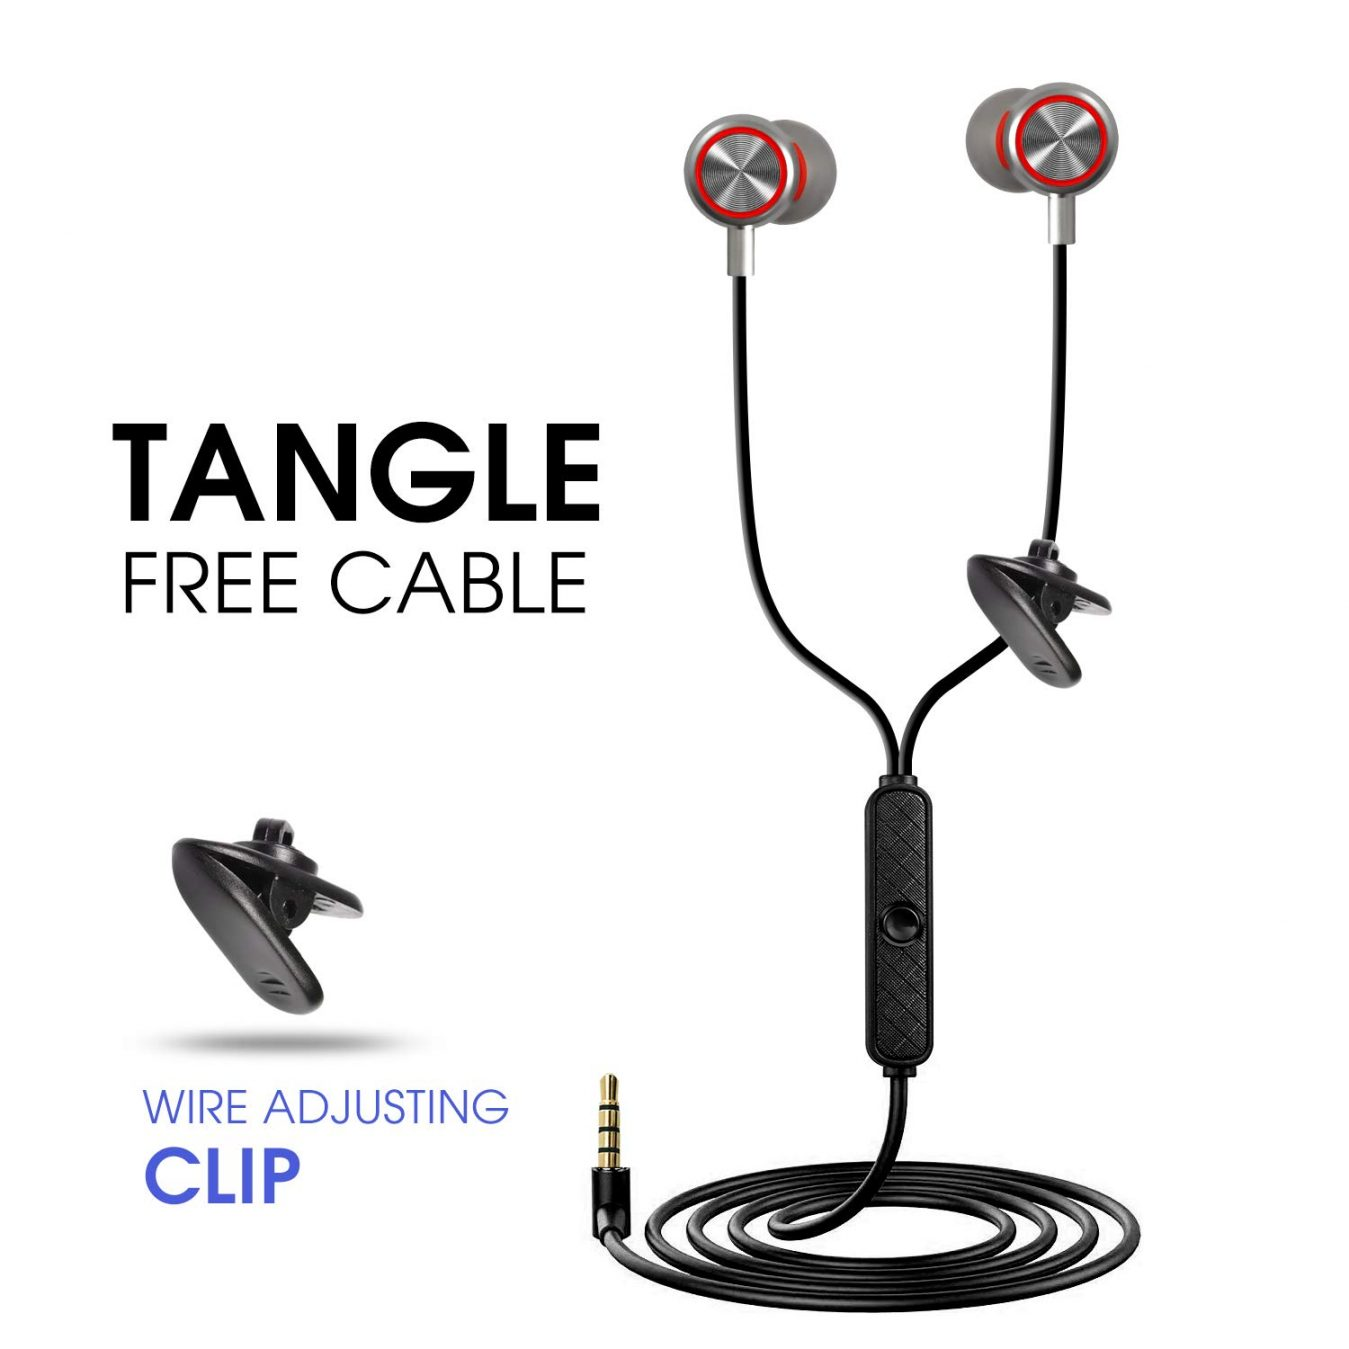 tangle free cable